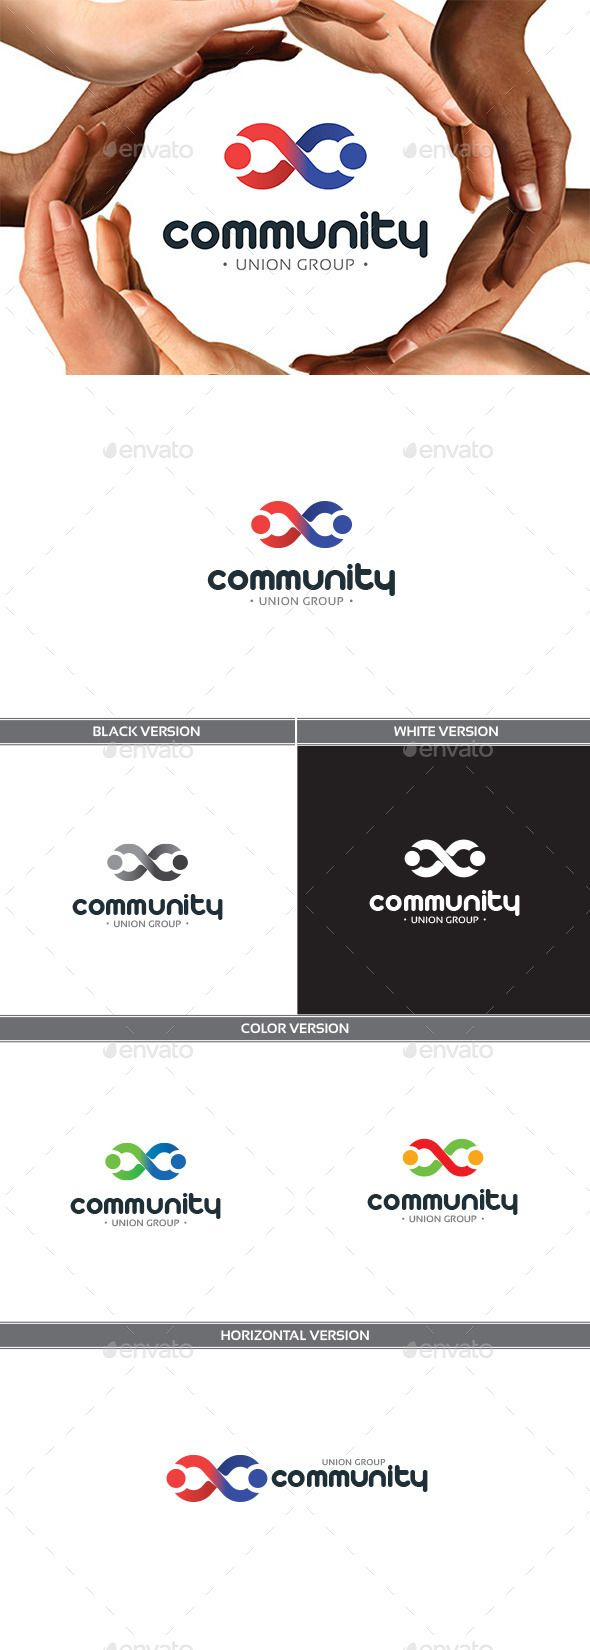 Community Logo Design Template Vector #logotype Download it here: http://graphicriver.net/item/community/11310070?s_rank=912?ref=nexion